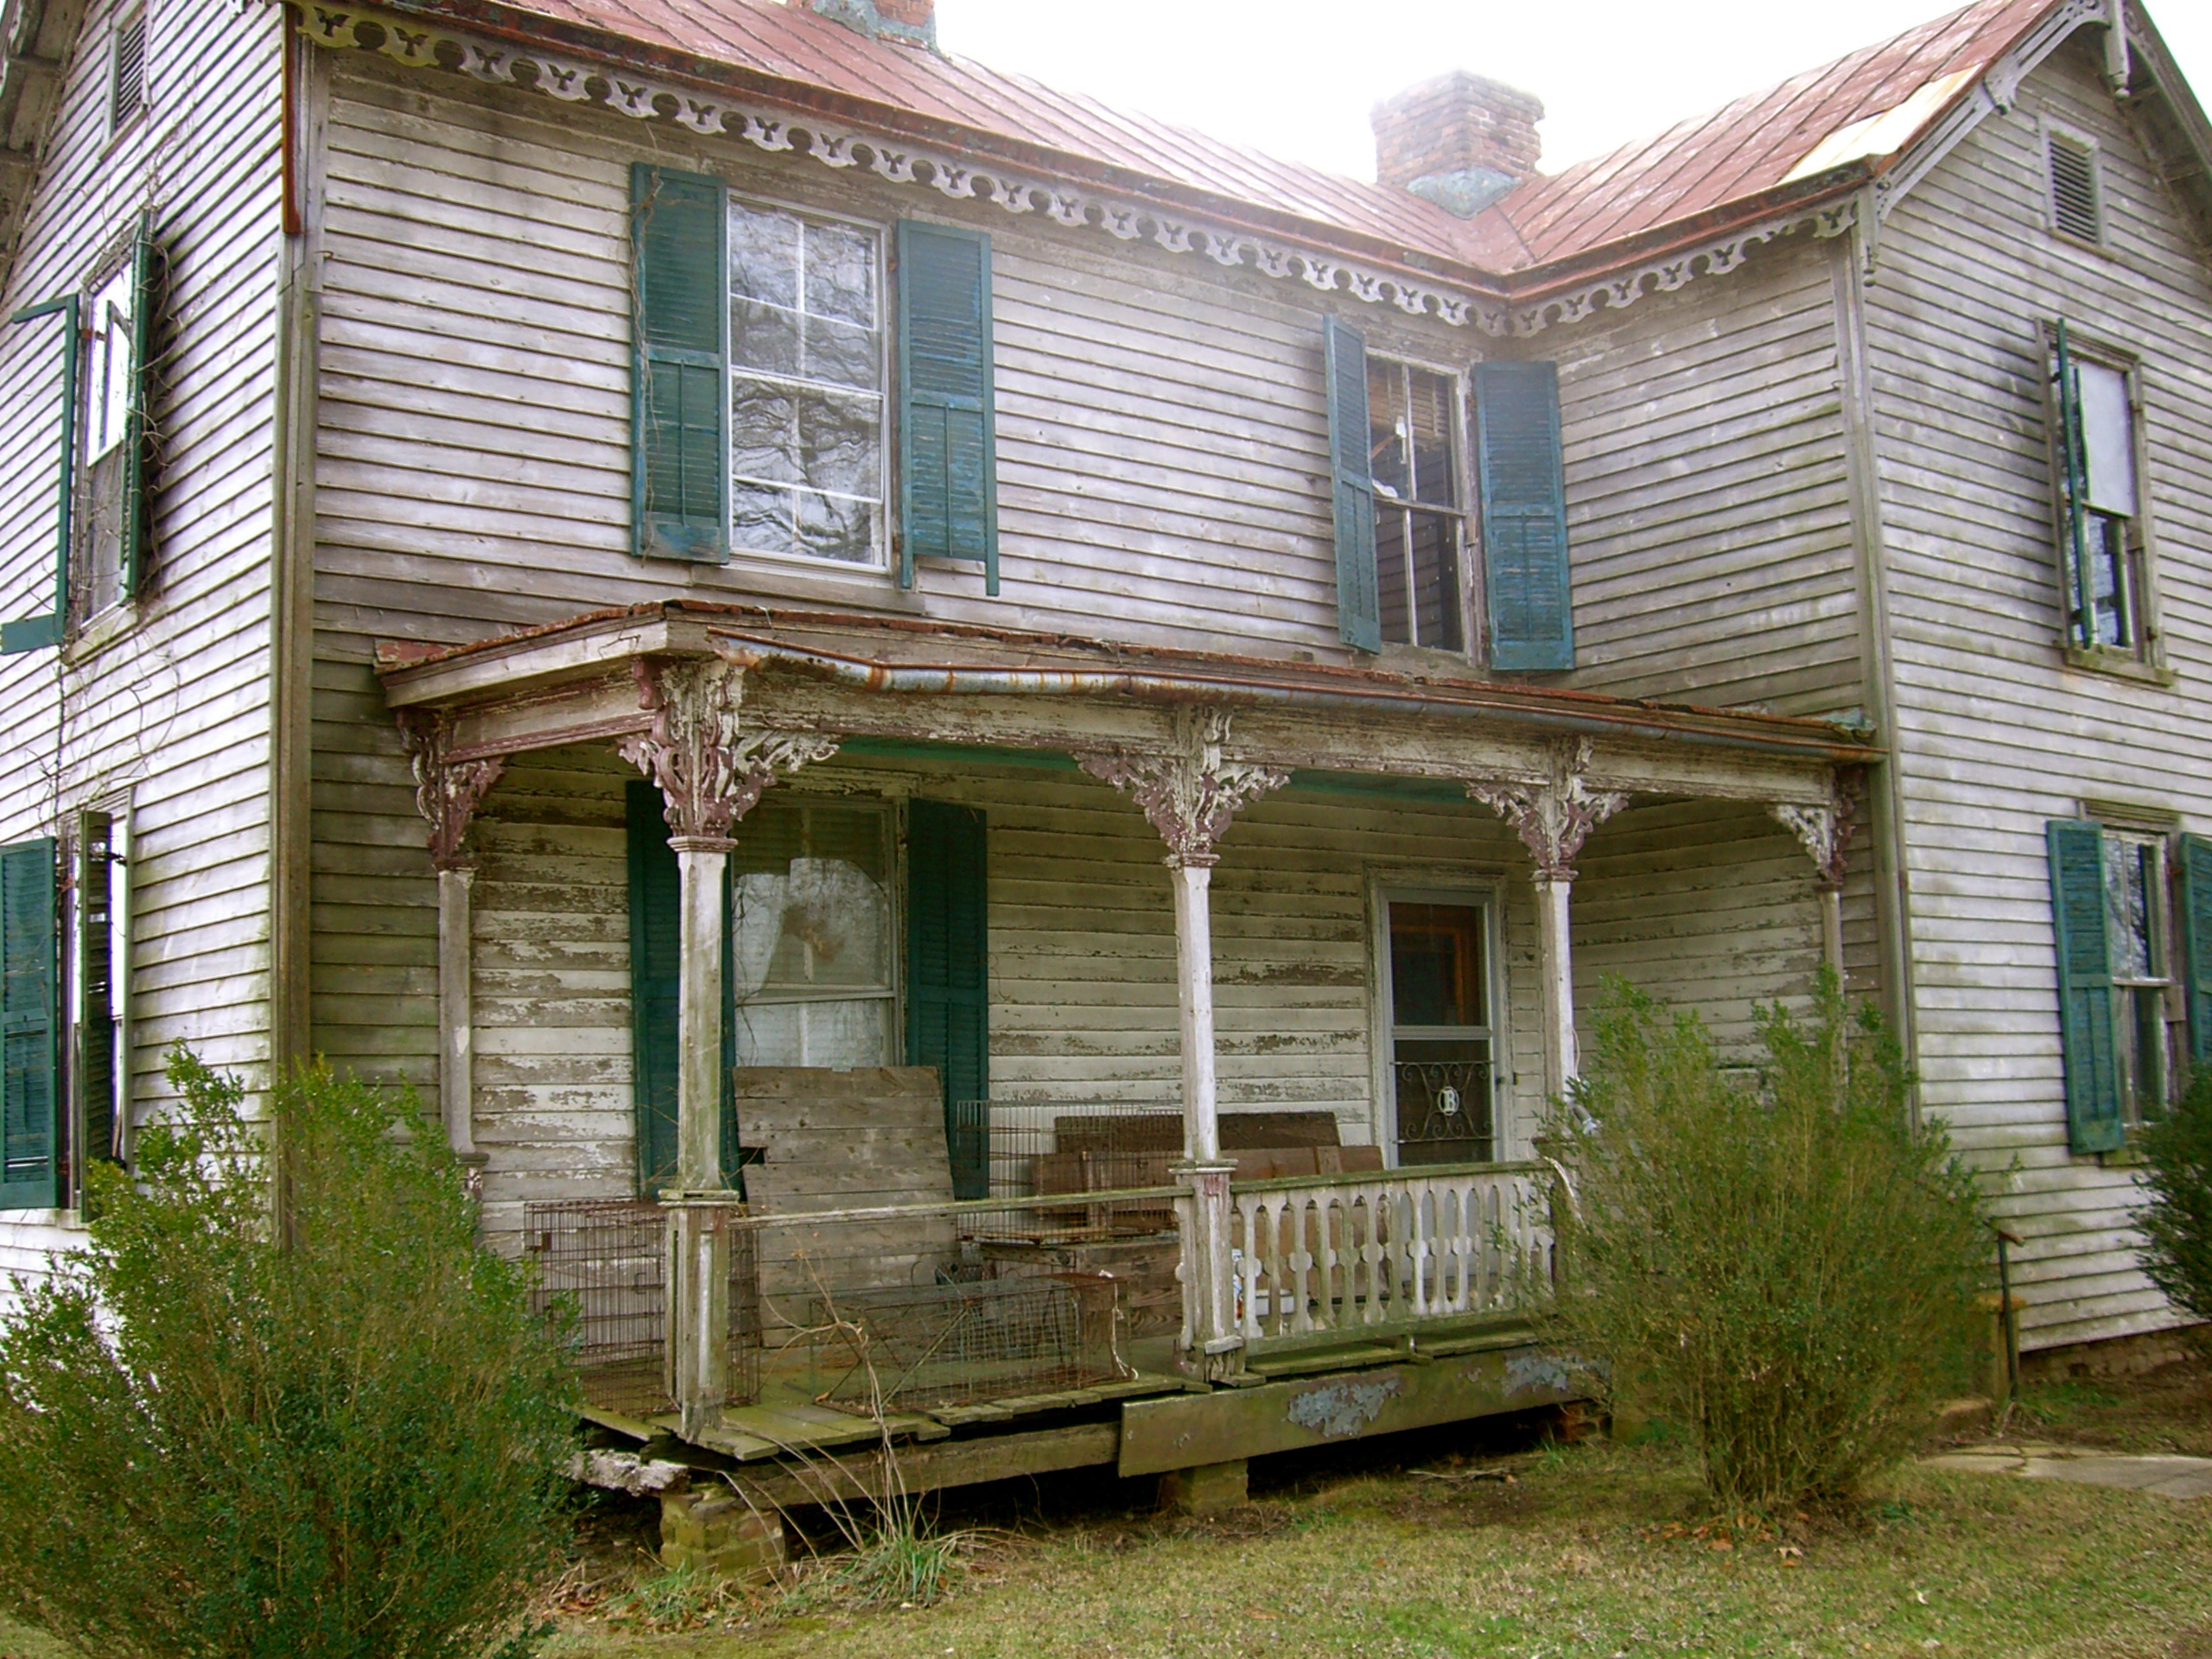 The old house breathes in and breathes out as if alive in some strange way. Foto by William Bass.